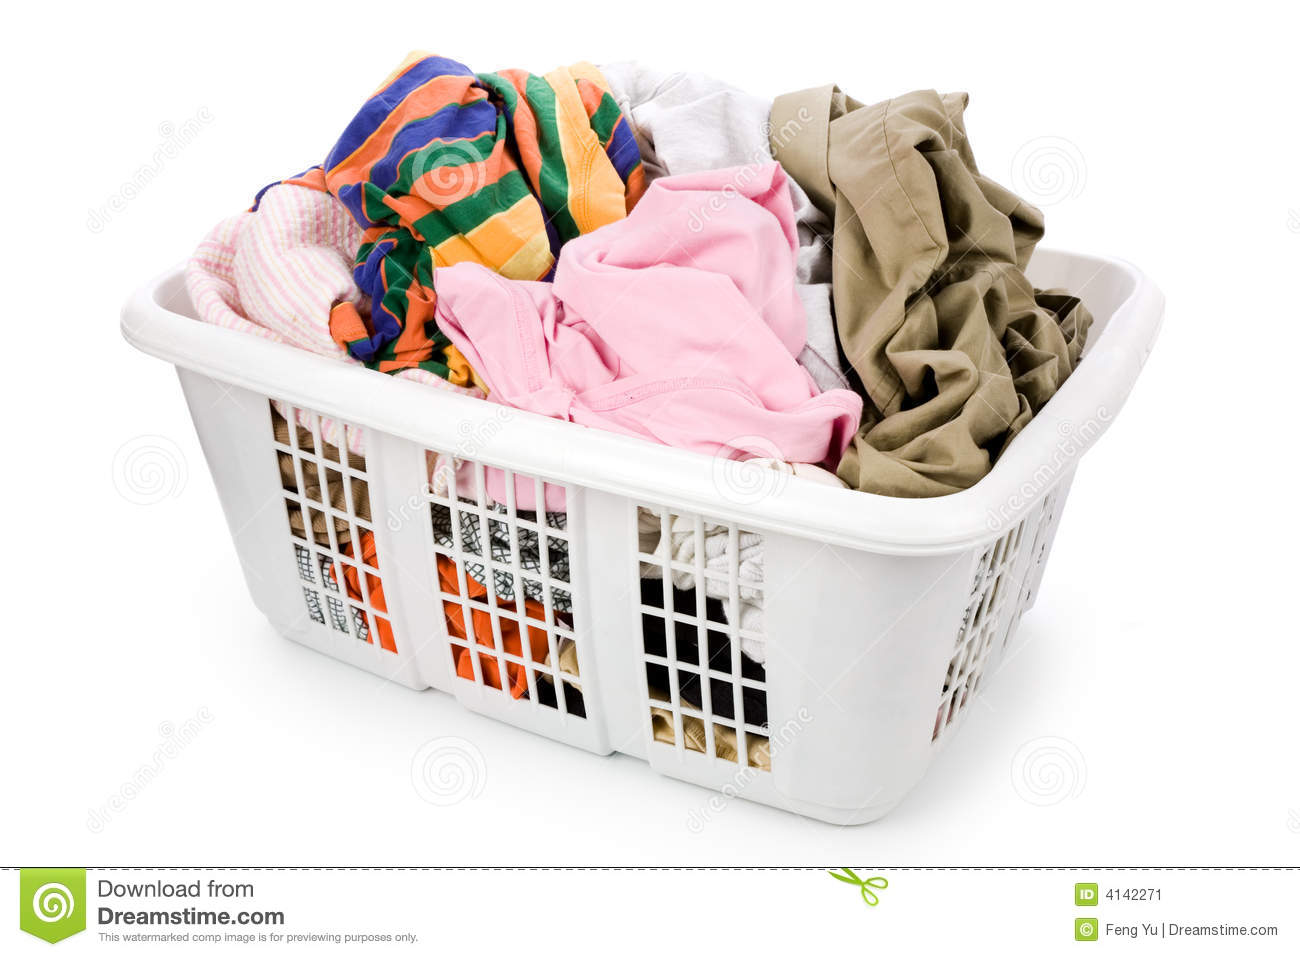 Dirty Laundry Baskets Laundry Basket And Dirty Clothing Stock Image Image 4142271